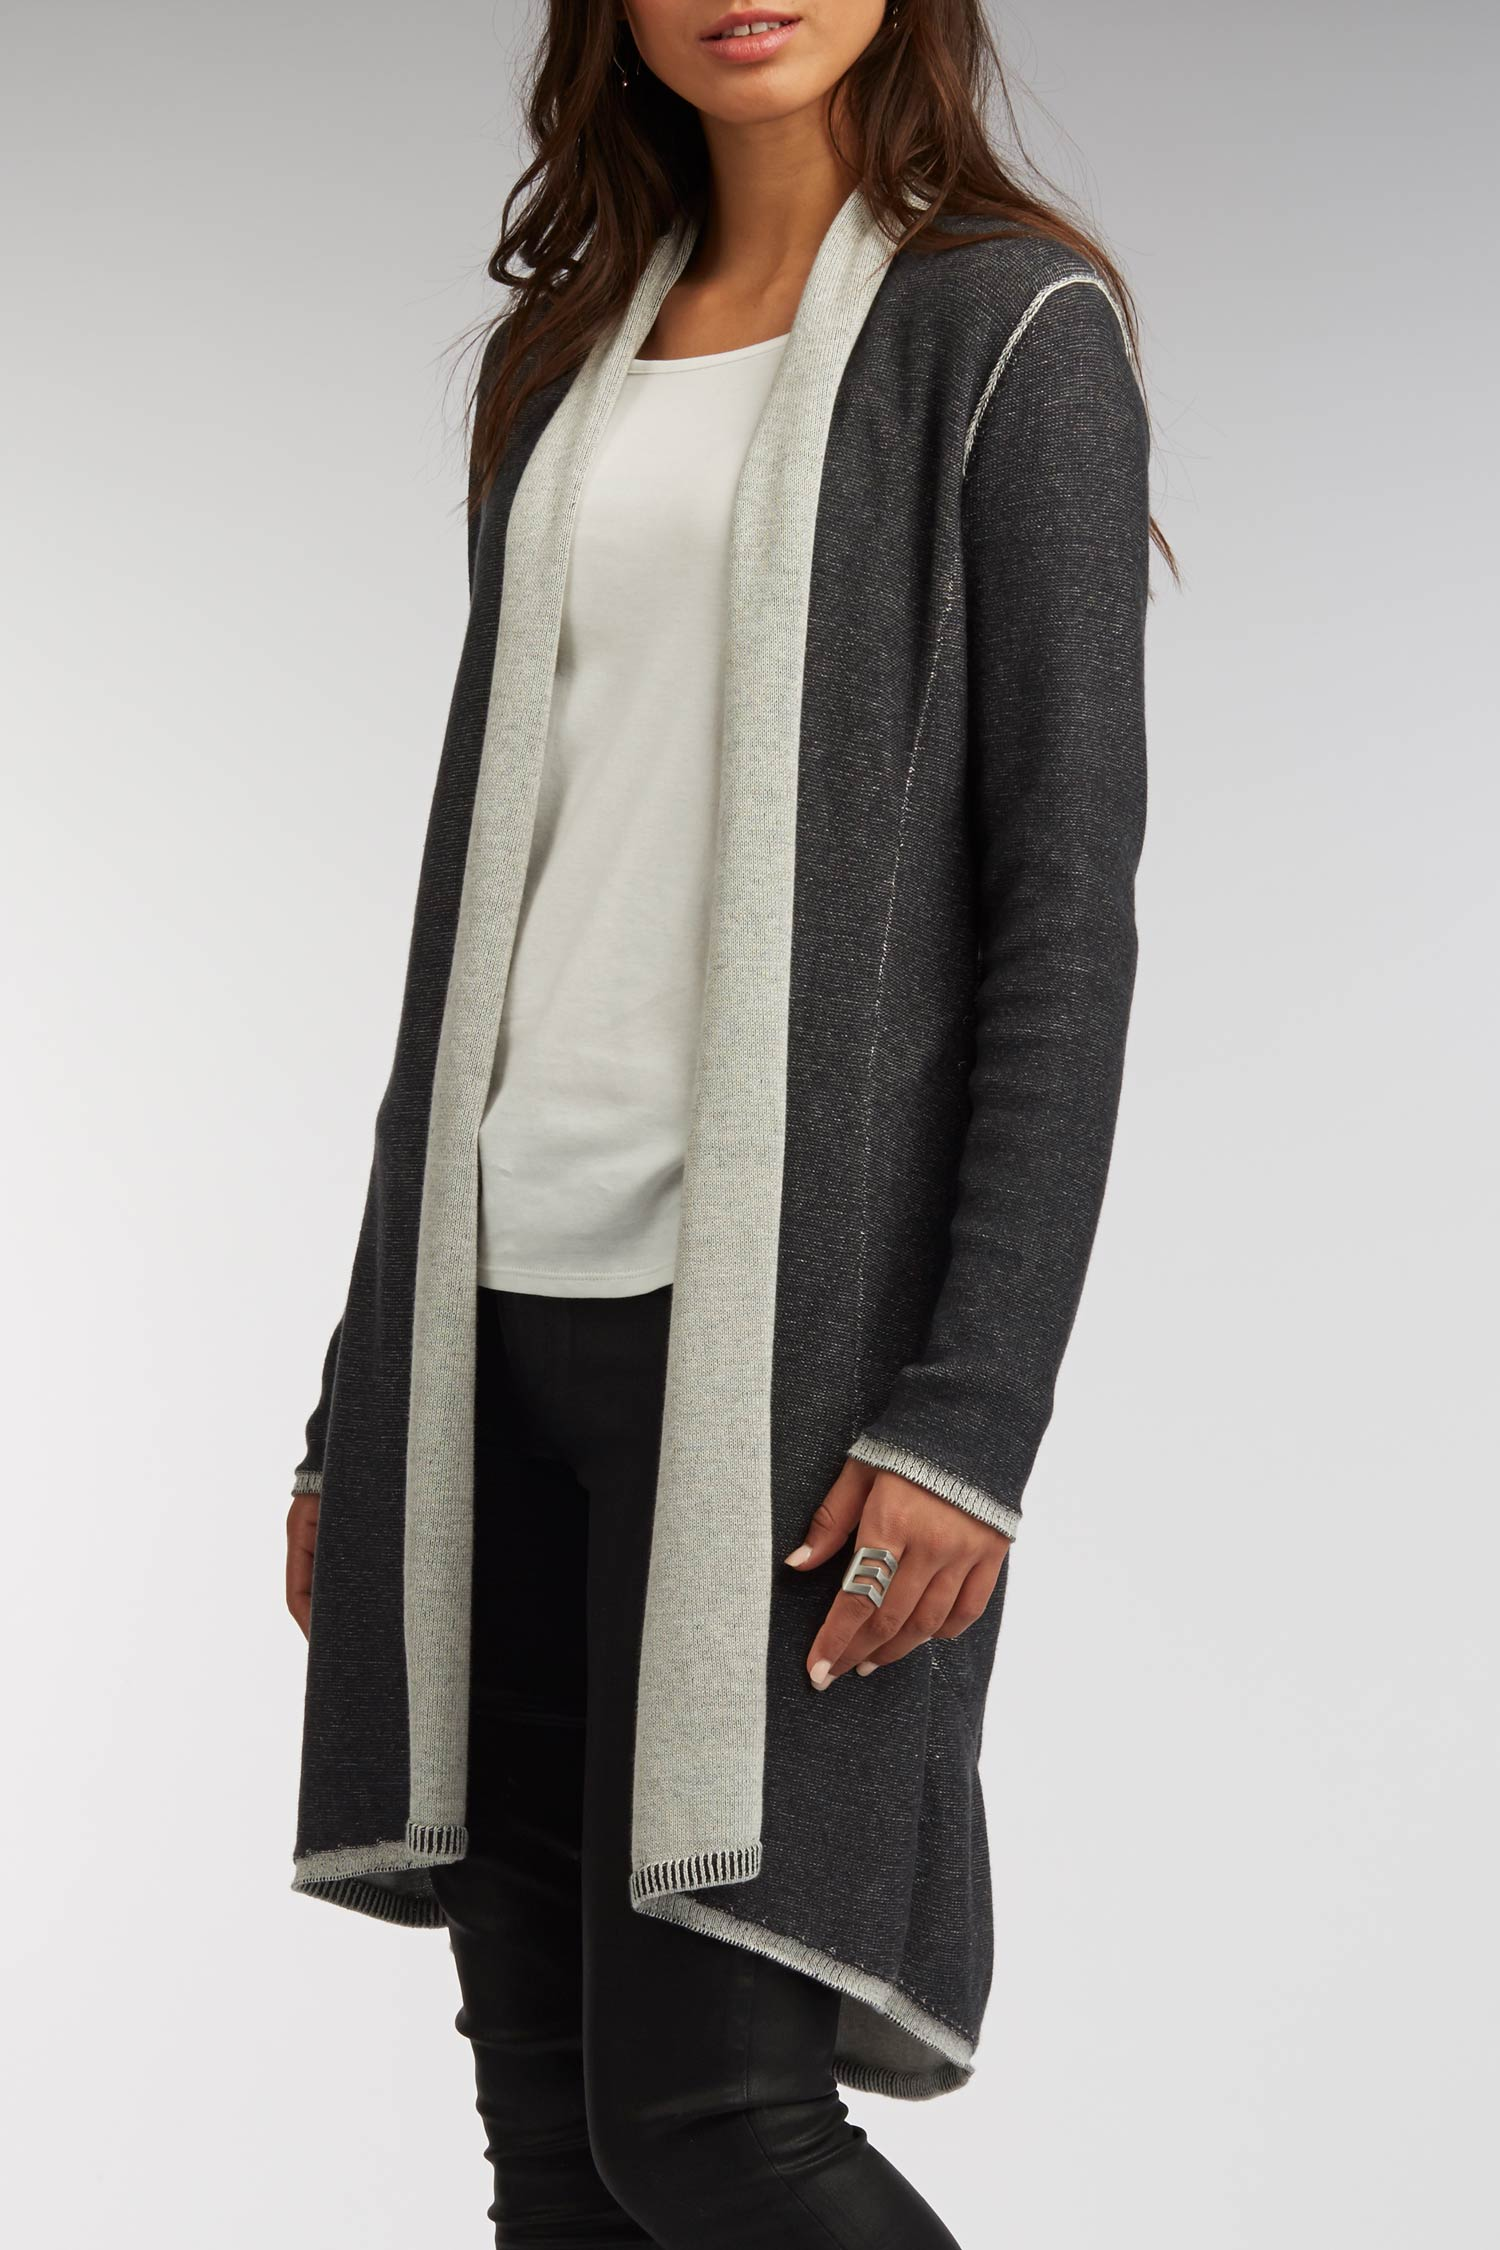 Womens Luxury Reversible Cardigan | Organic Cotton Sweater